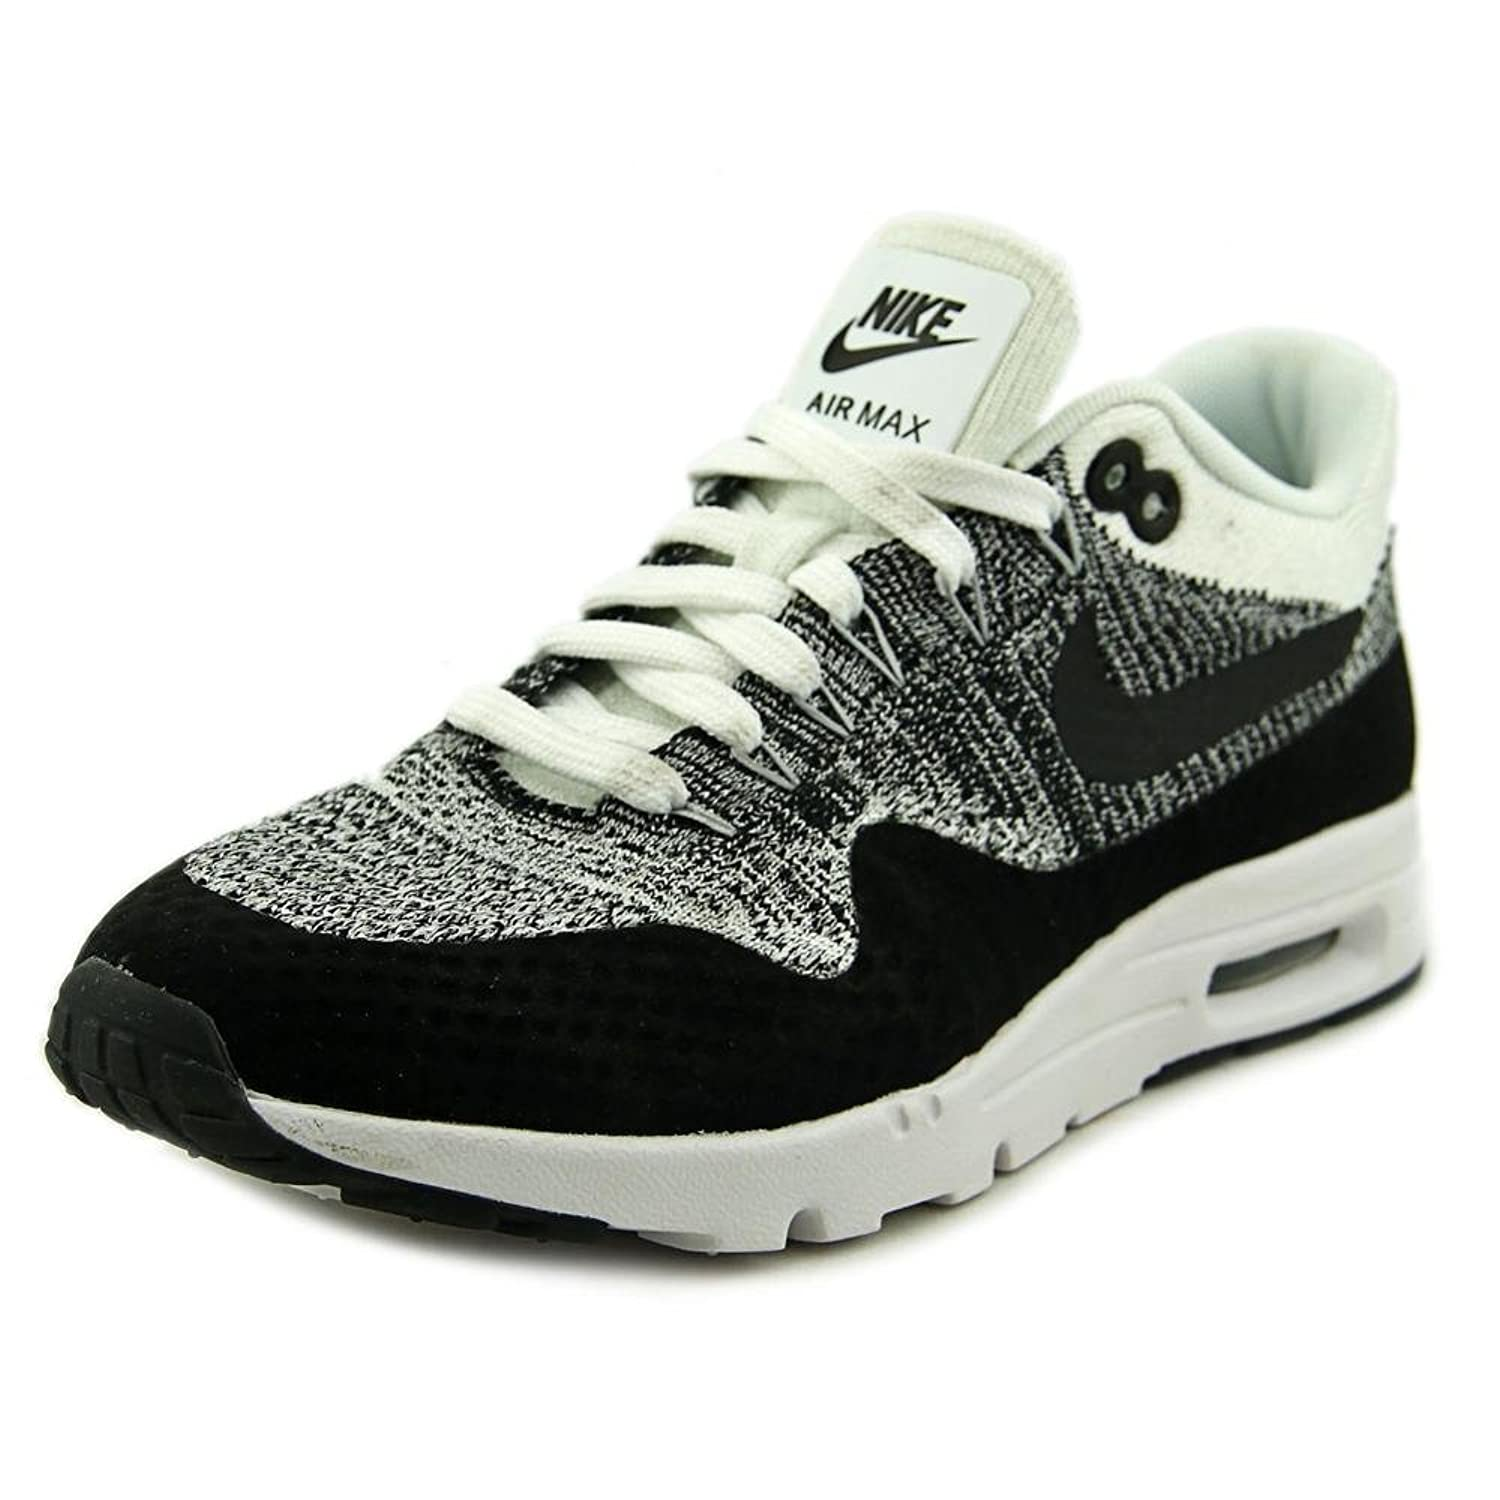 air max 1 ultra moire amazon